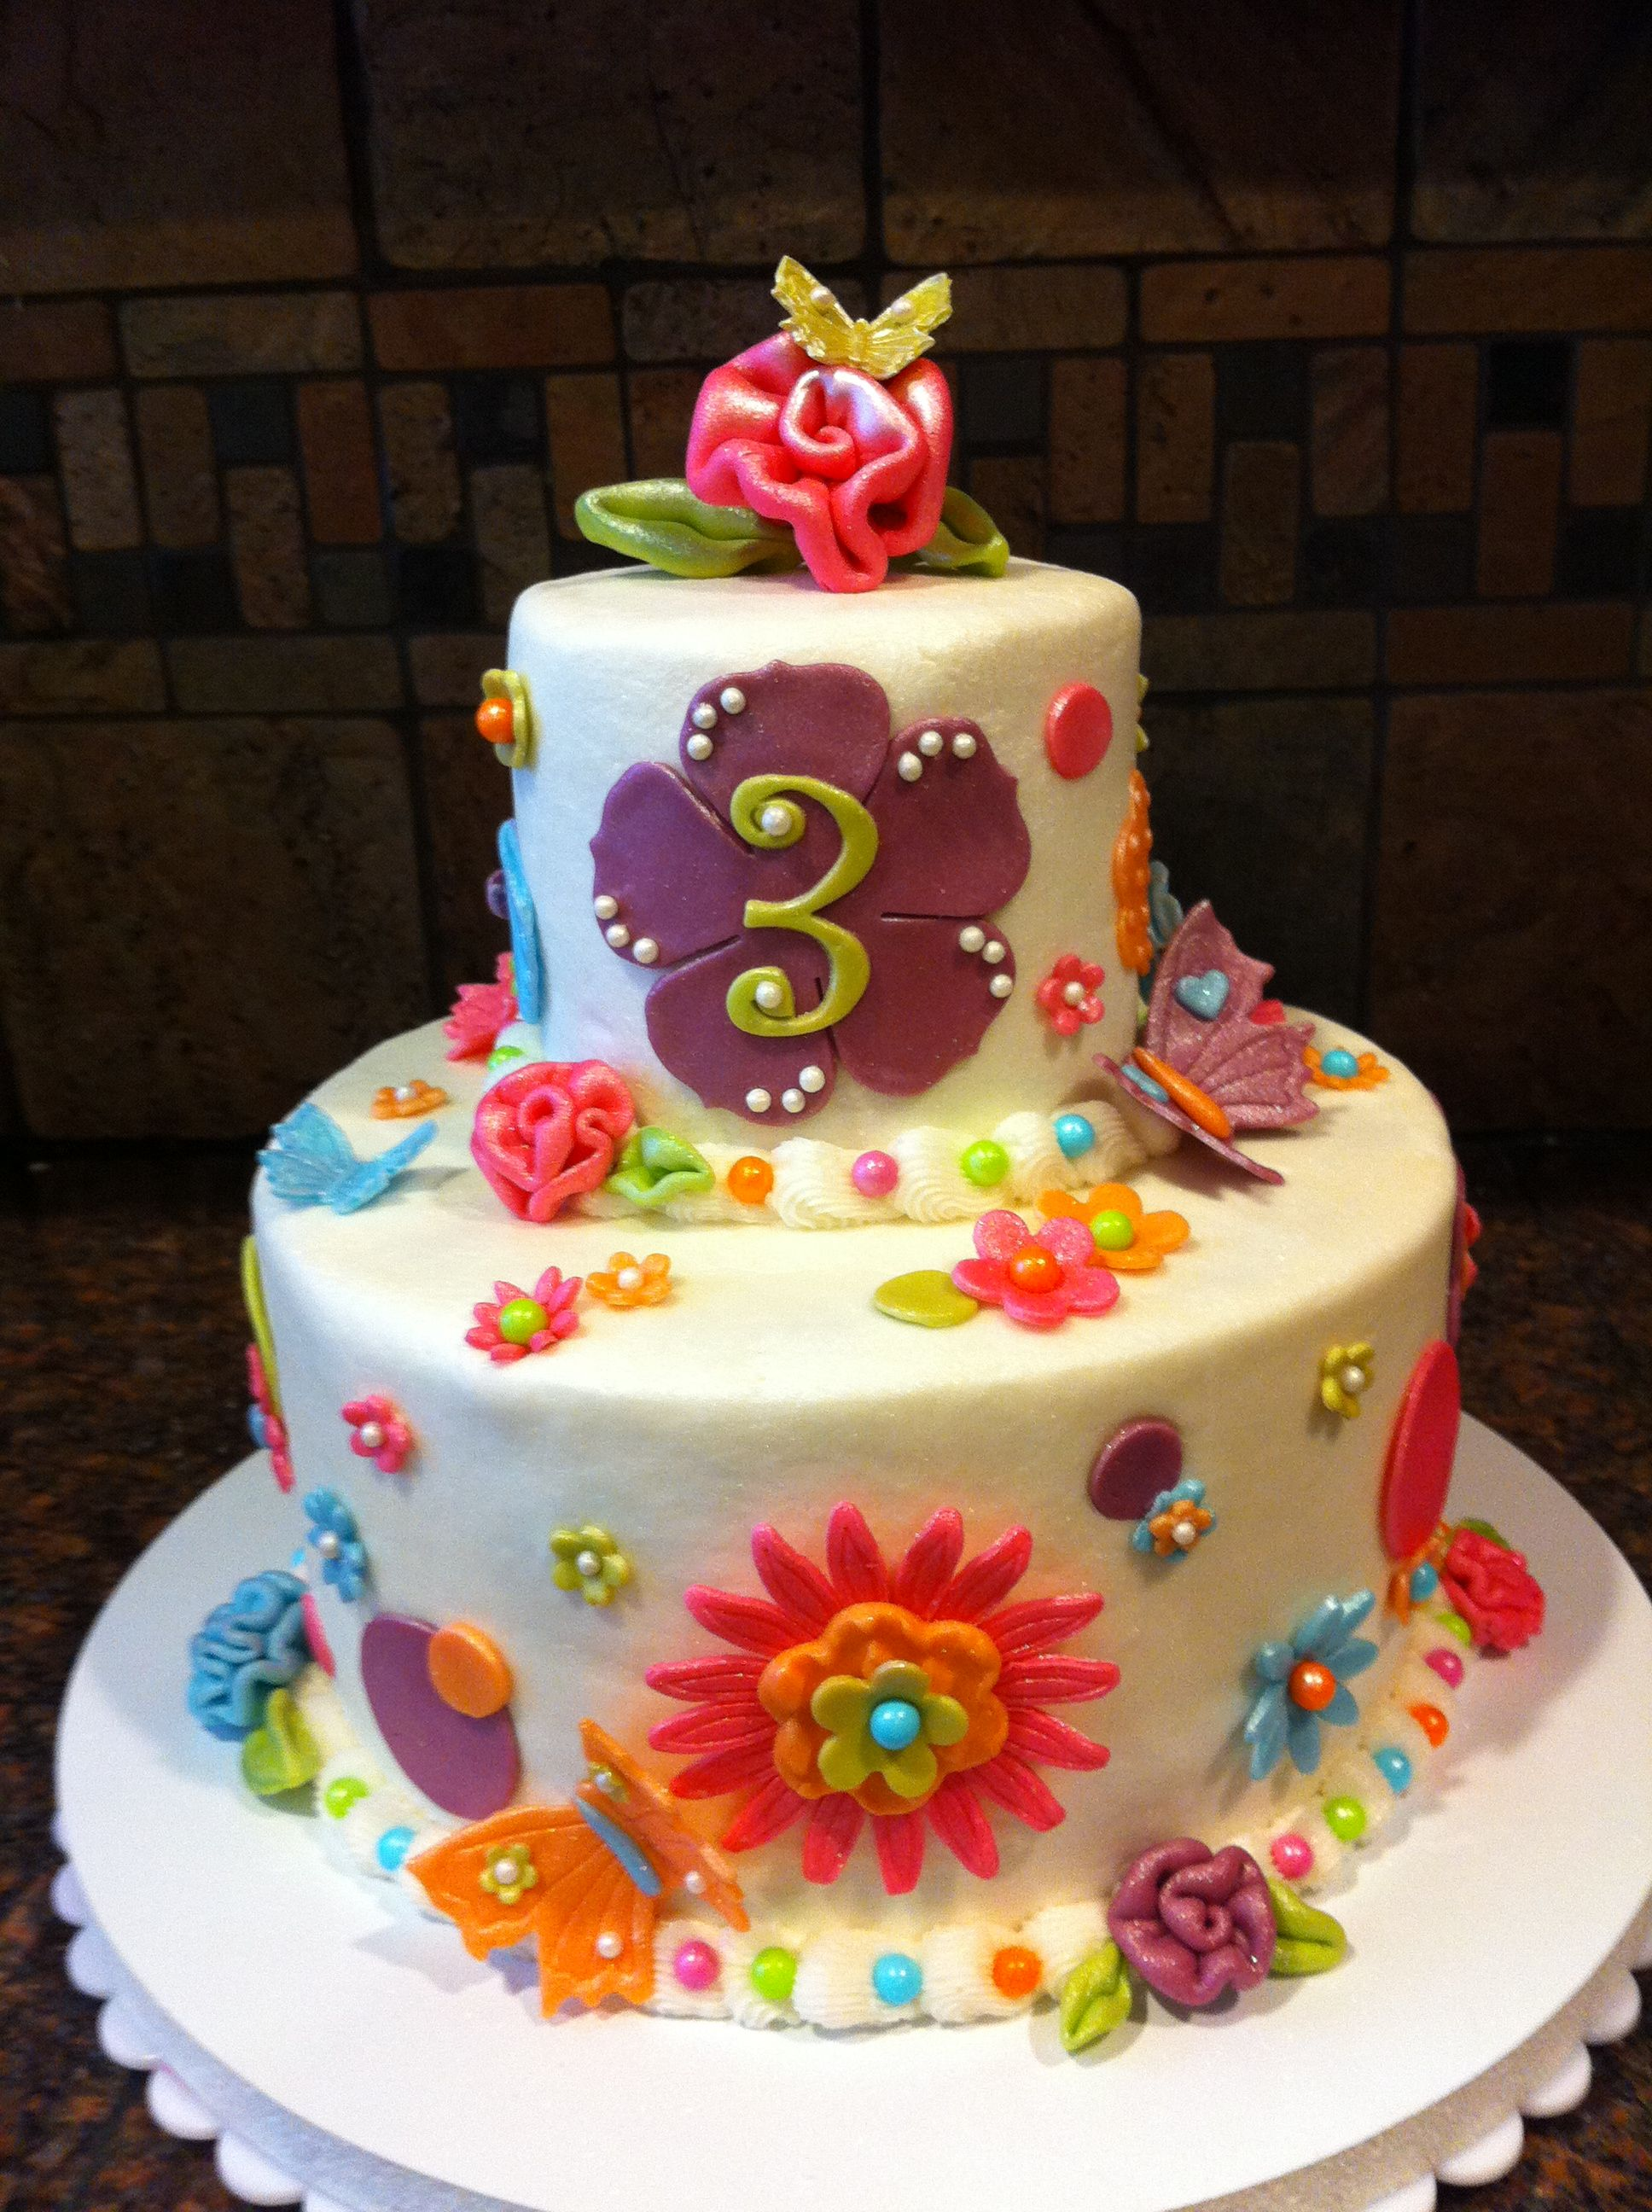 Birthday Cake Photos 8 Inch Base With A 4 Inch Top Oh How I Want